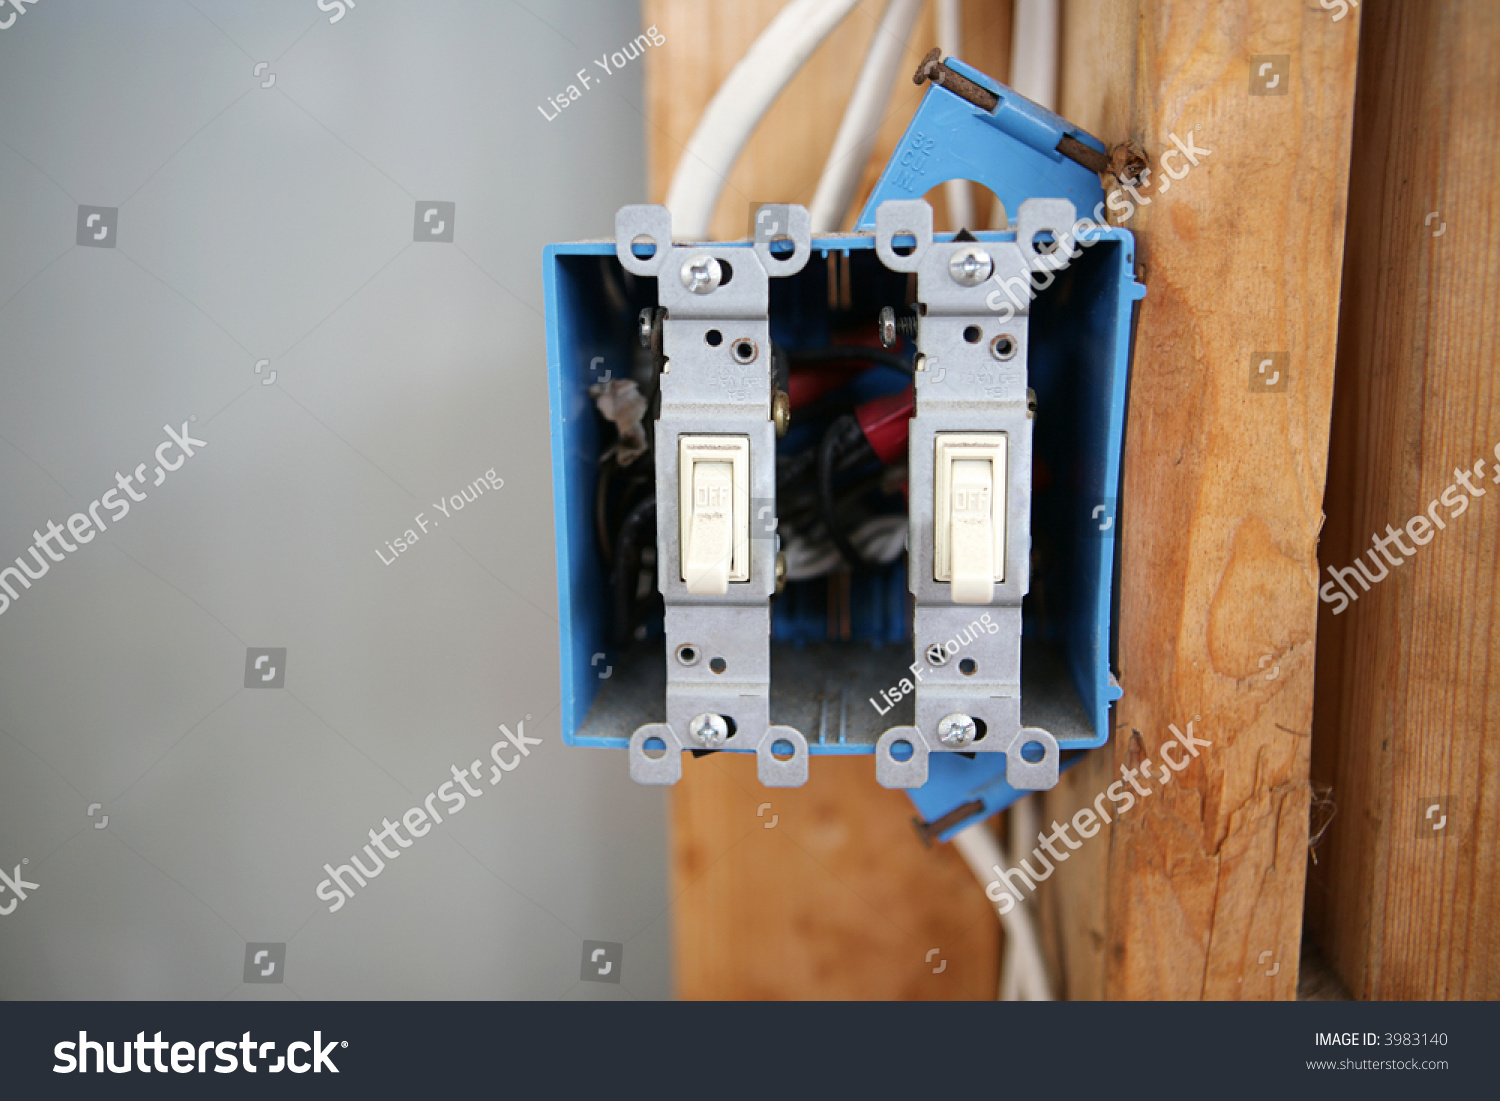 Wiring Double Gang Outlet Box Free Download Wiring Diagrams Pictures